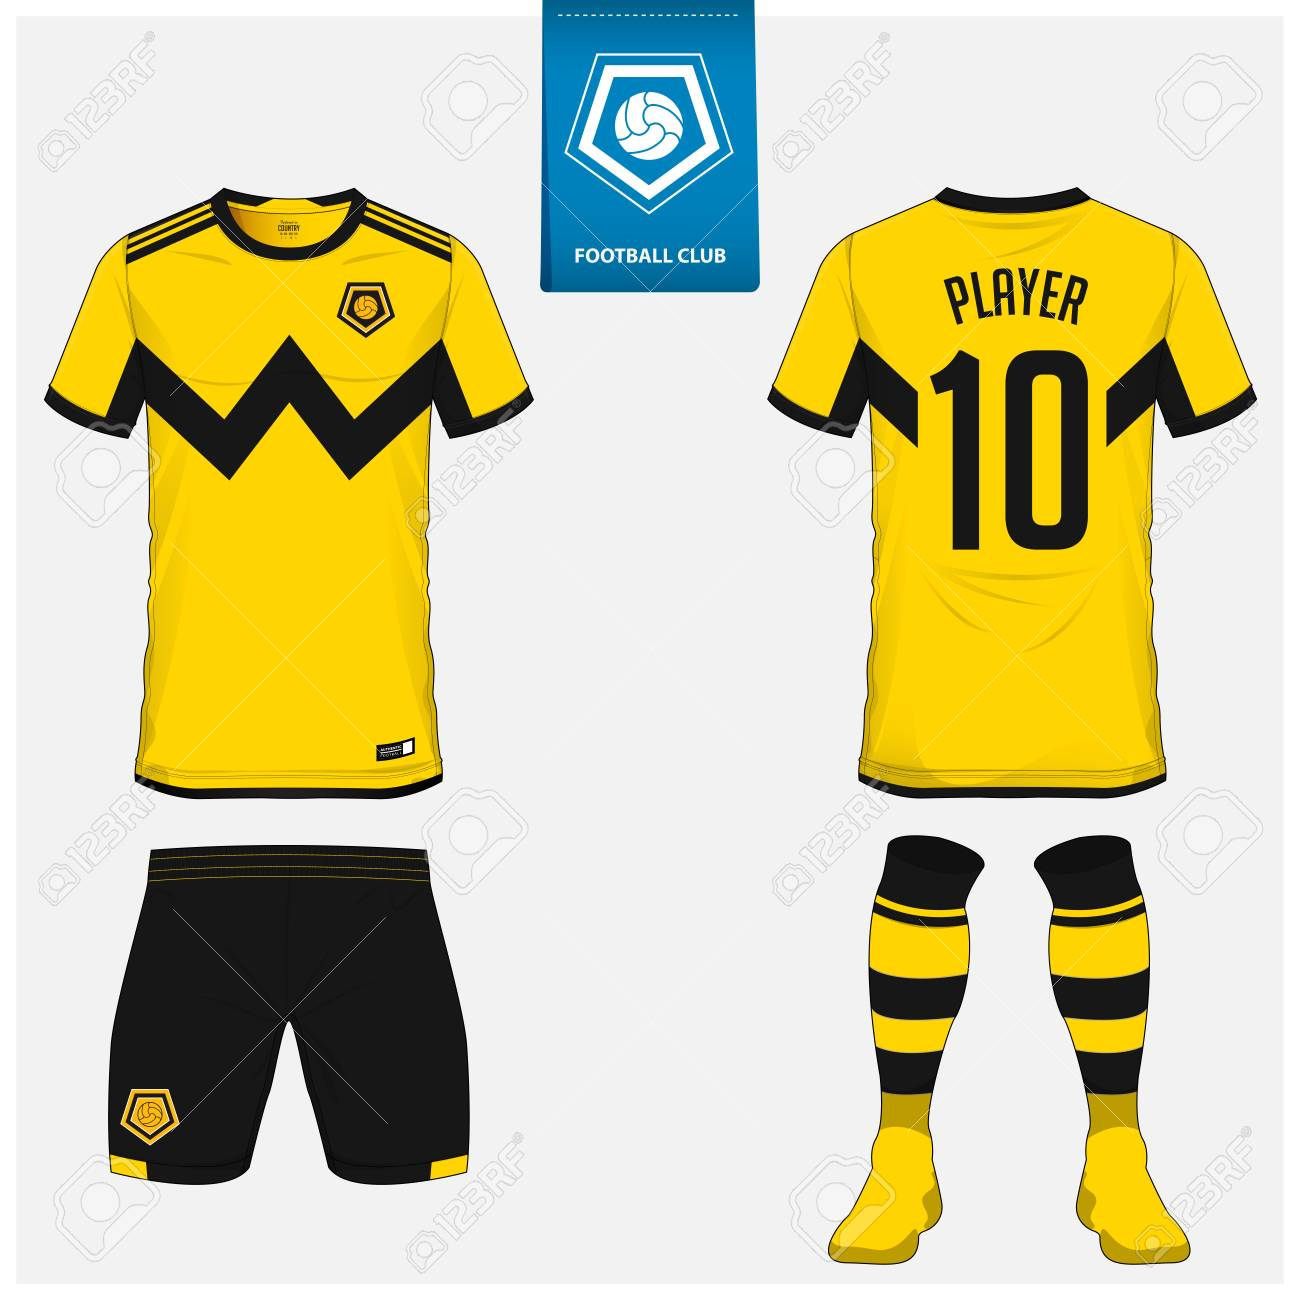 710df6014 Soccer jersey or football kit, shorts, sock template design for sport club.  Football